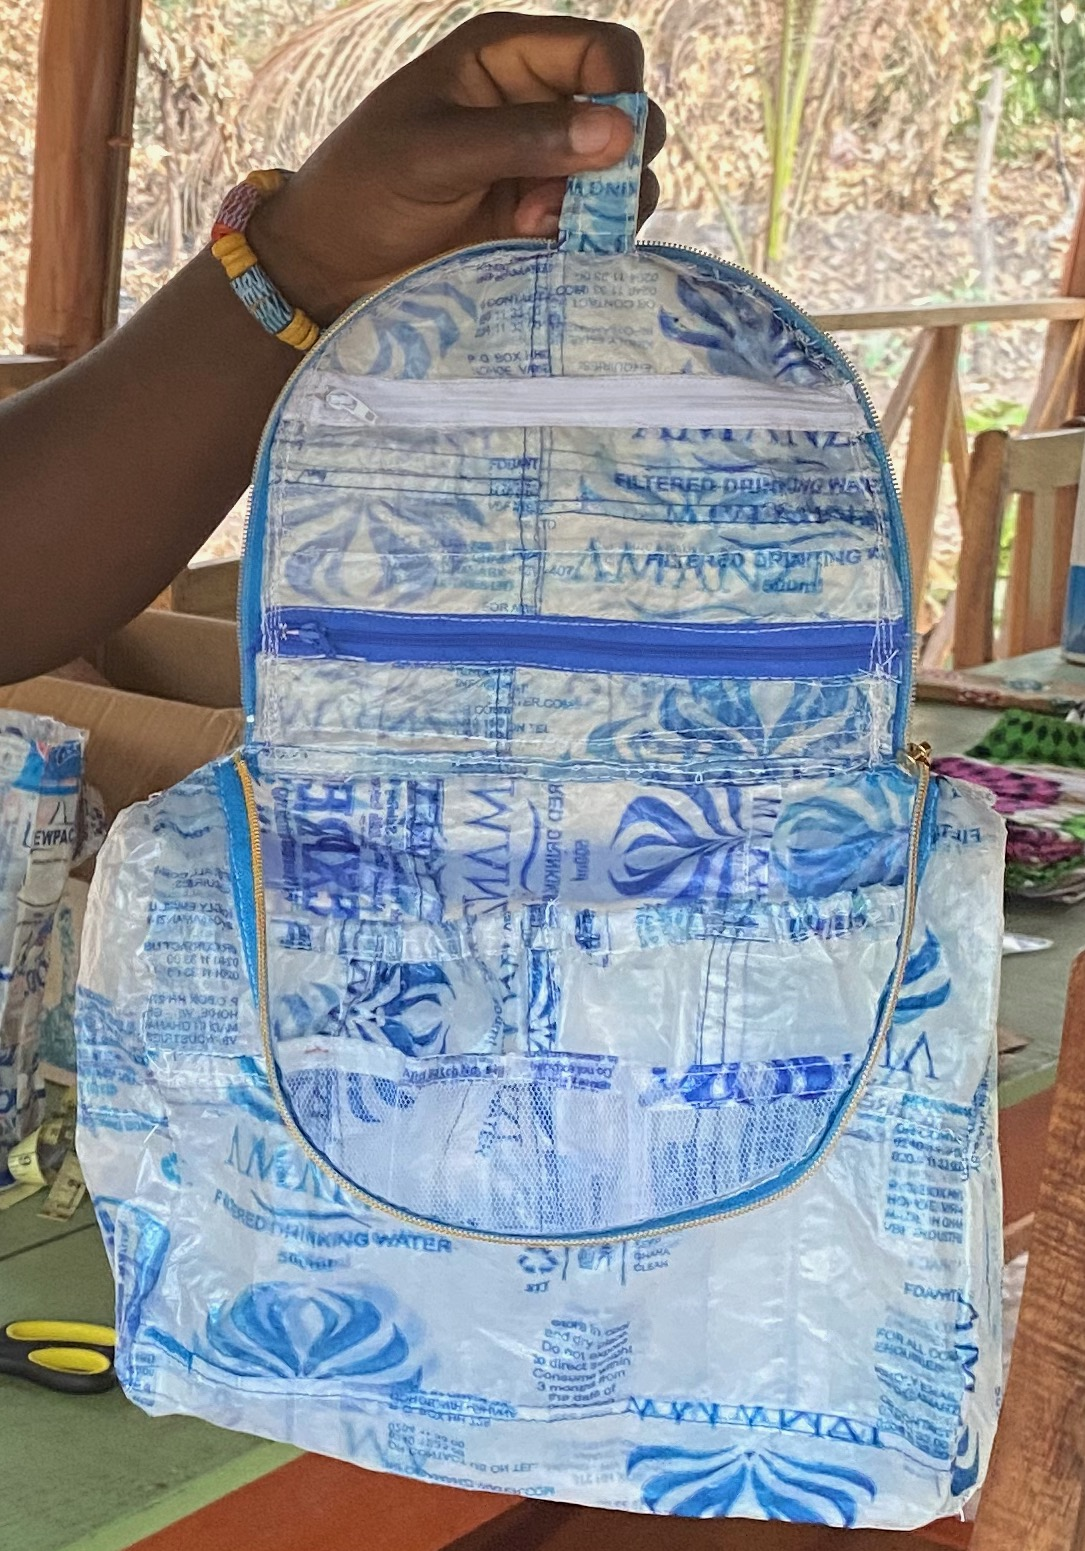 Toilettries bag made of water sachets.